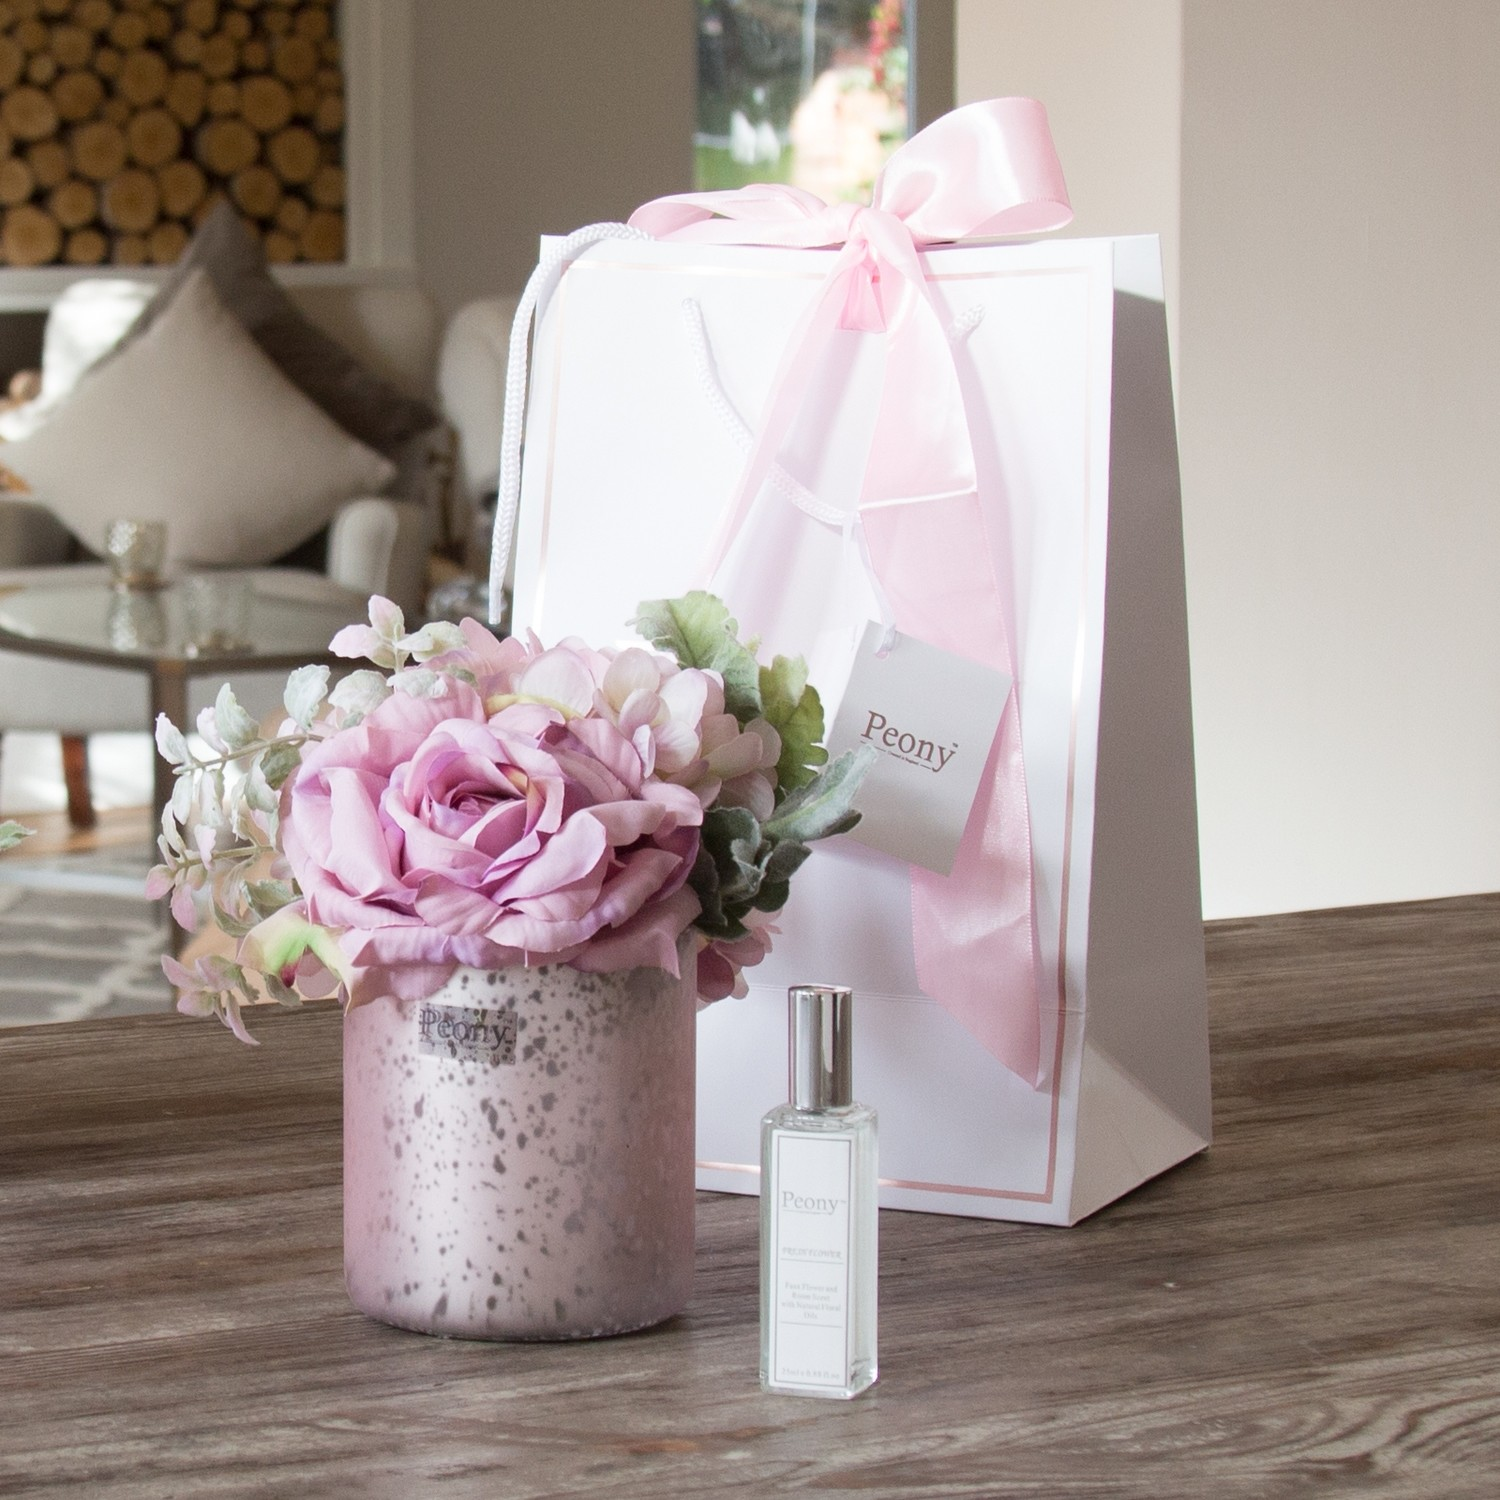 Rose, Hydrangea and Foliage in a pink Mercury vase